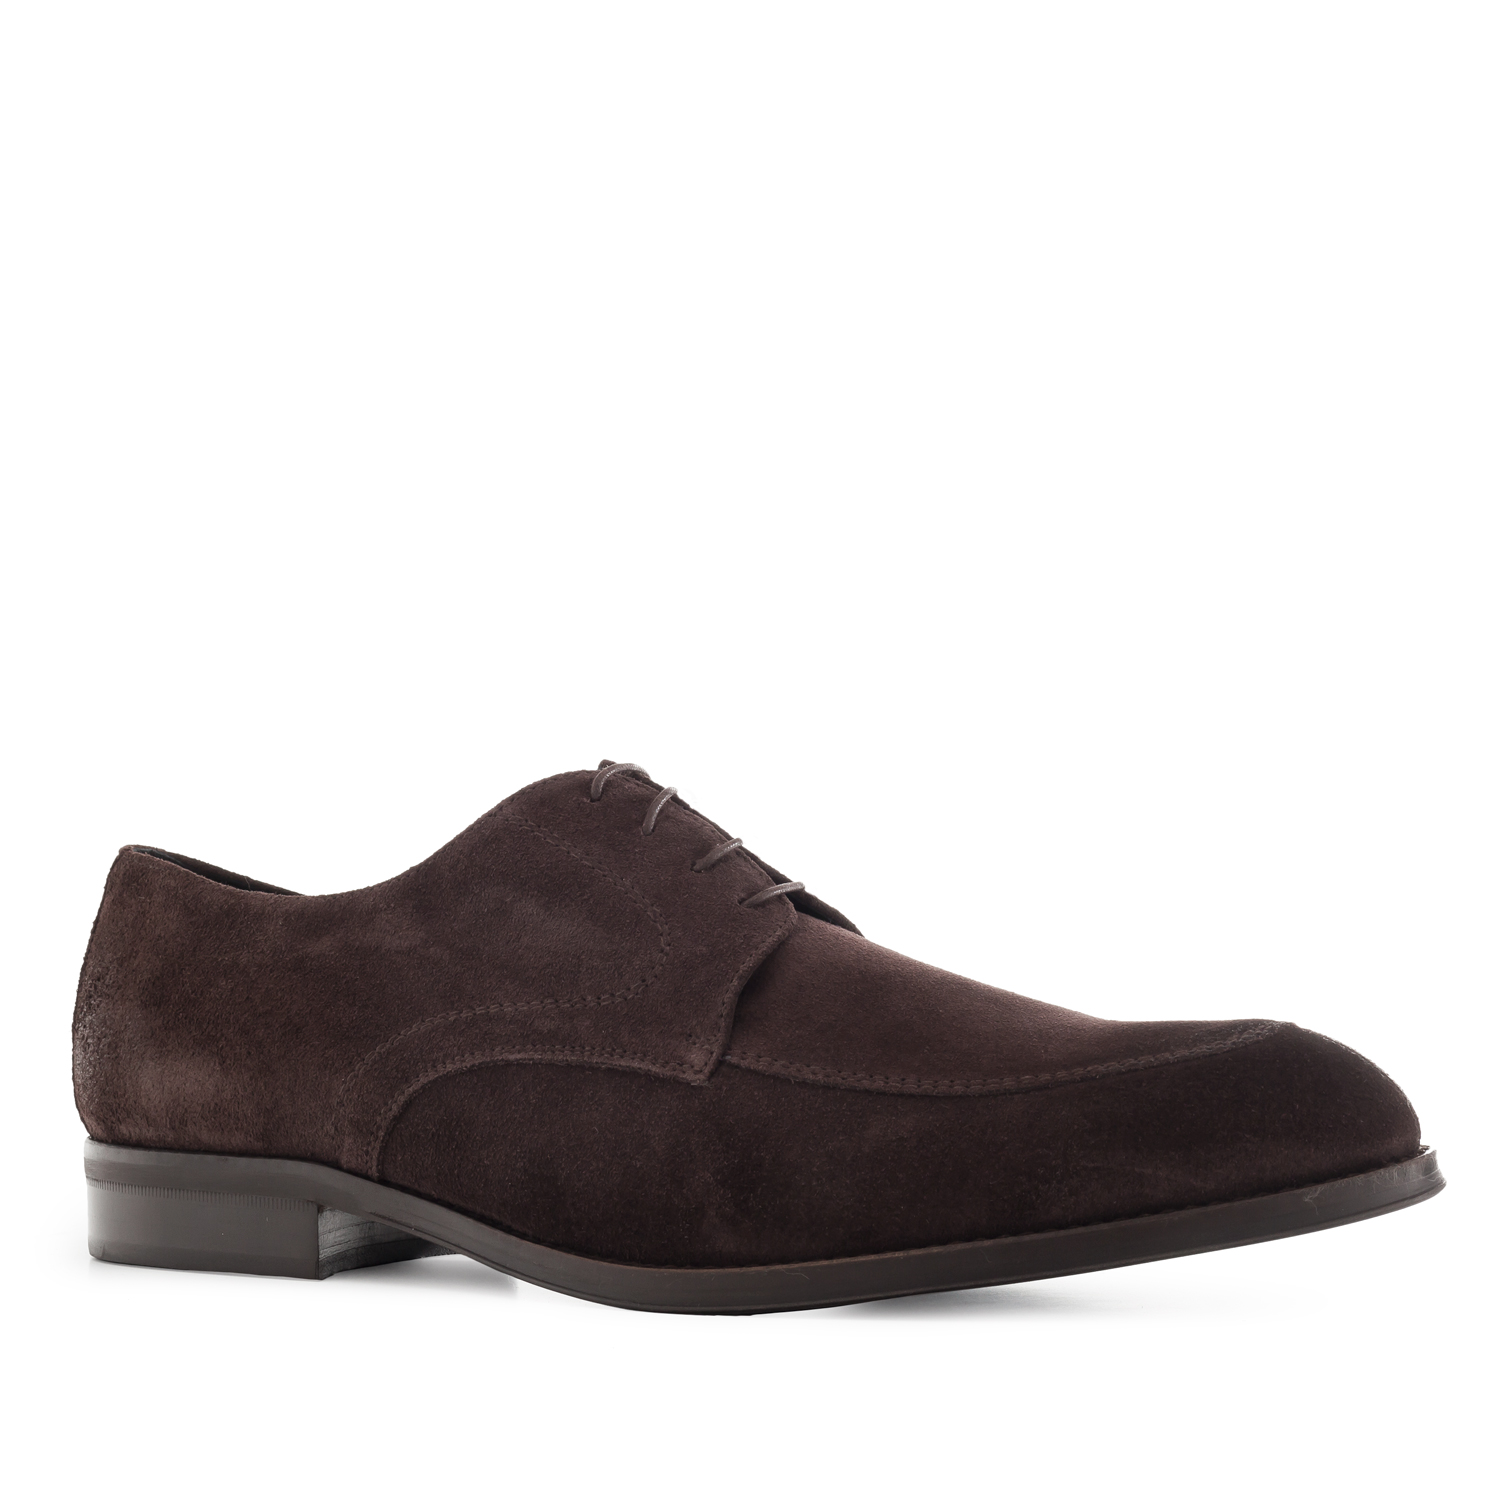 Zapatos Blucher Serraje Marron